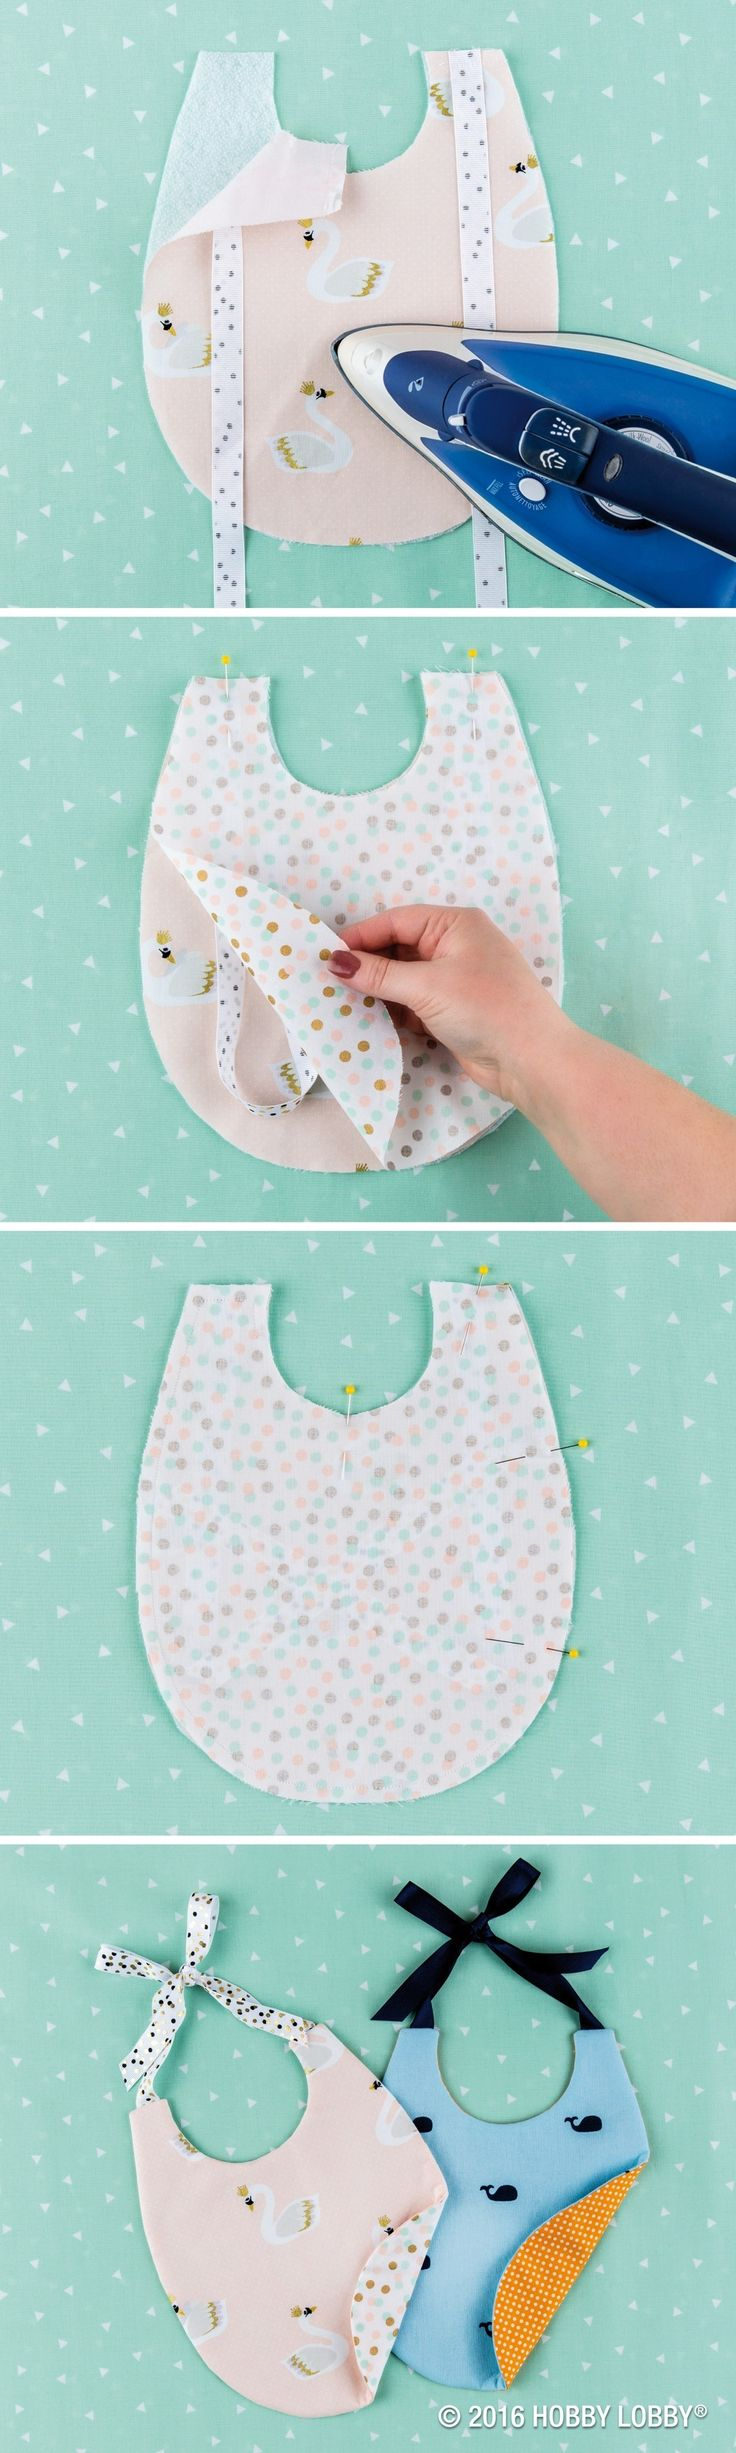 133 best 어린이 images on Pinterest | Sewing patterns, Baby sewing ...